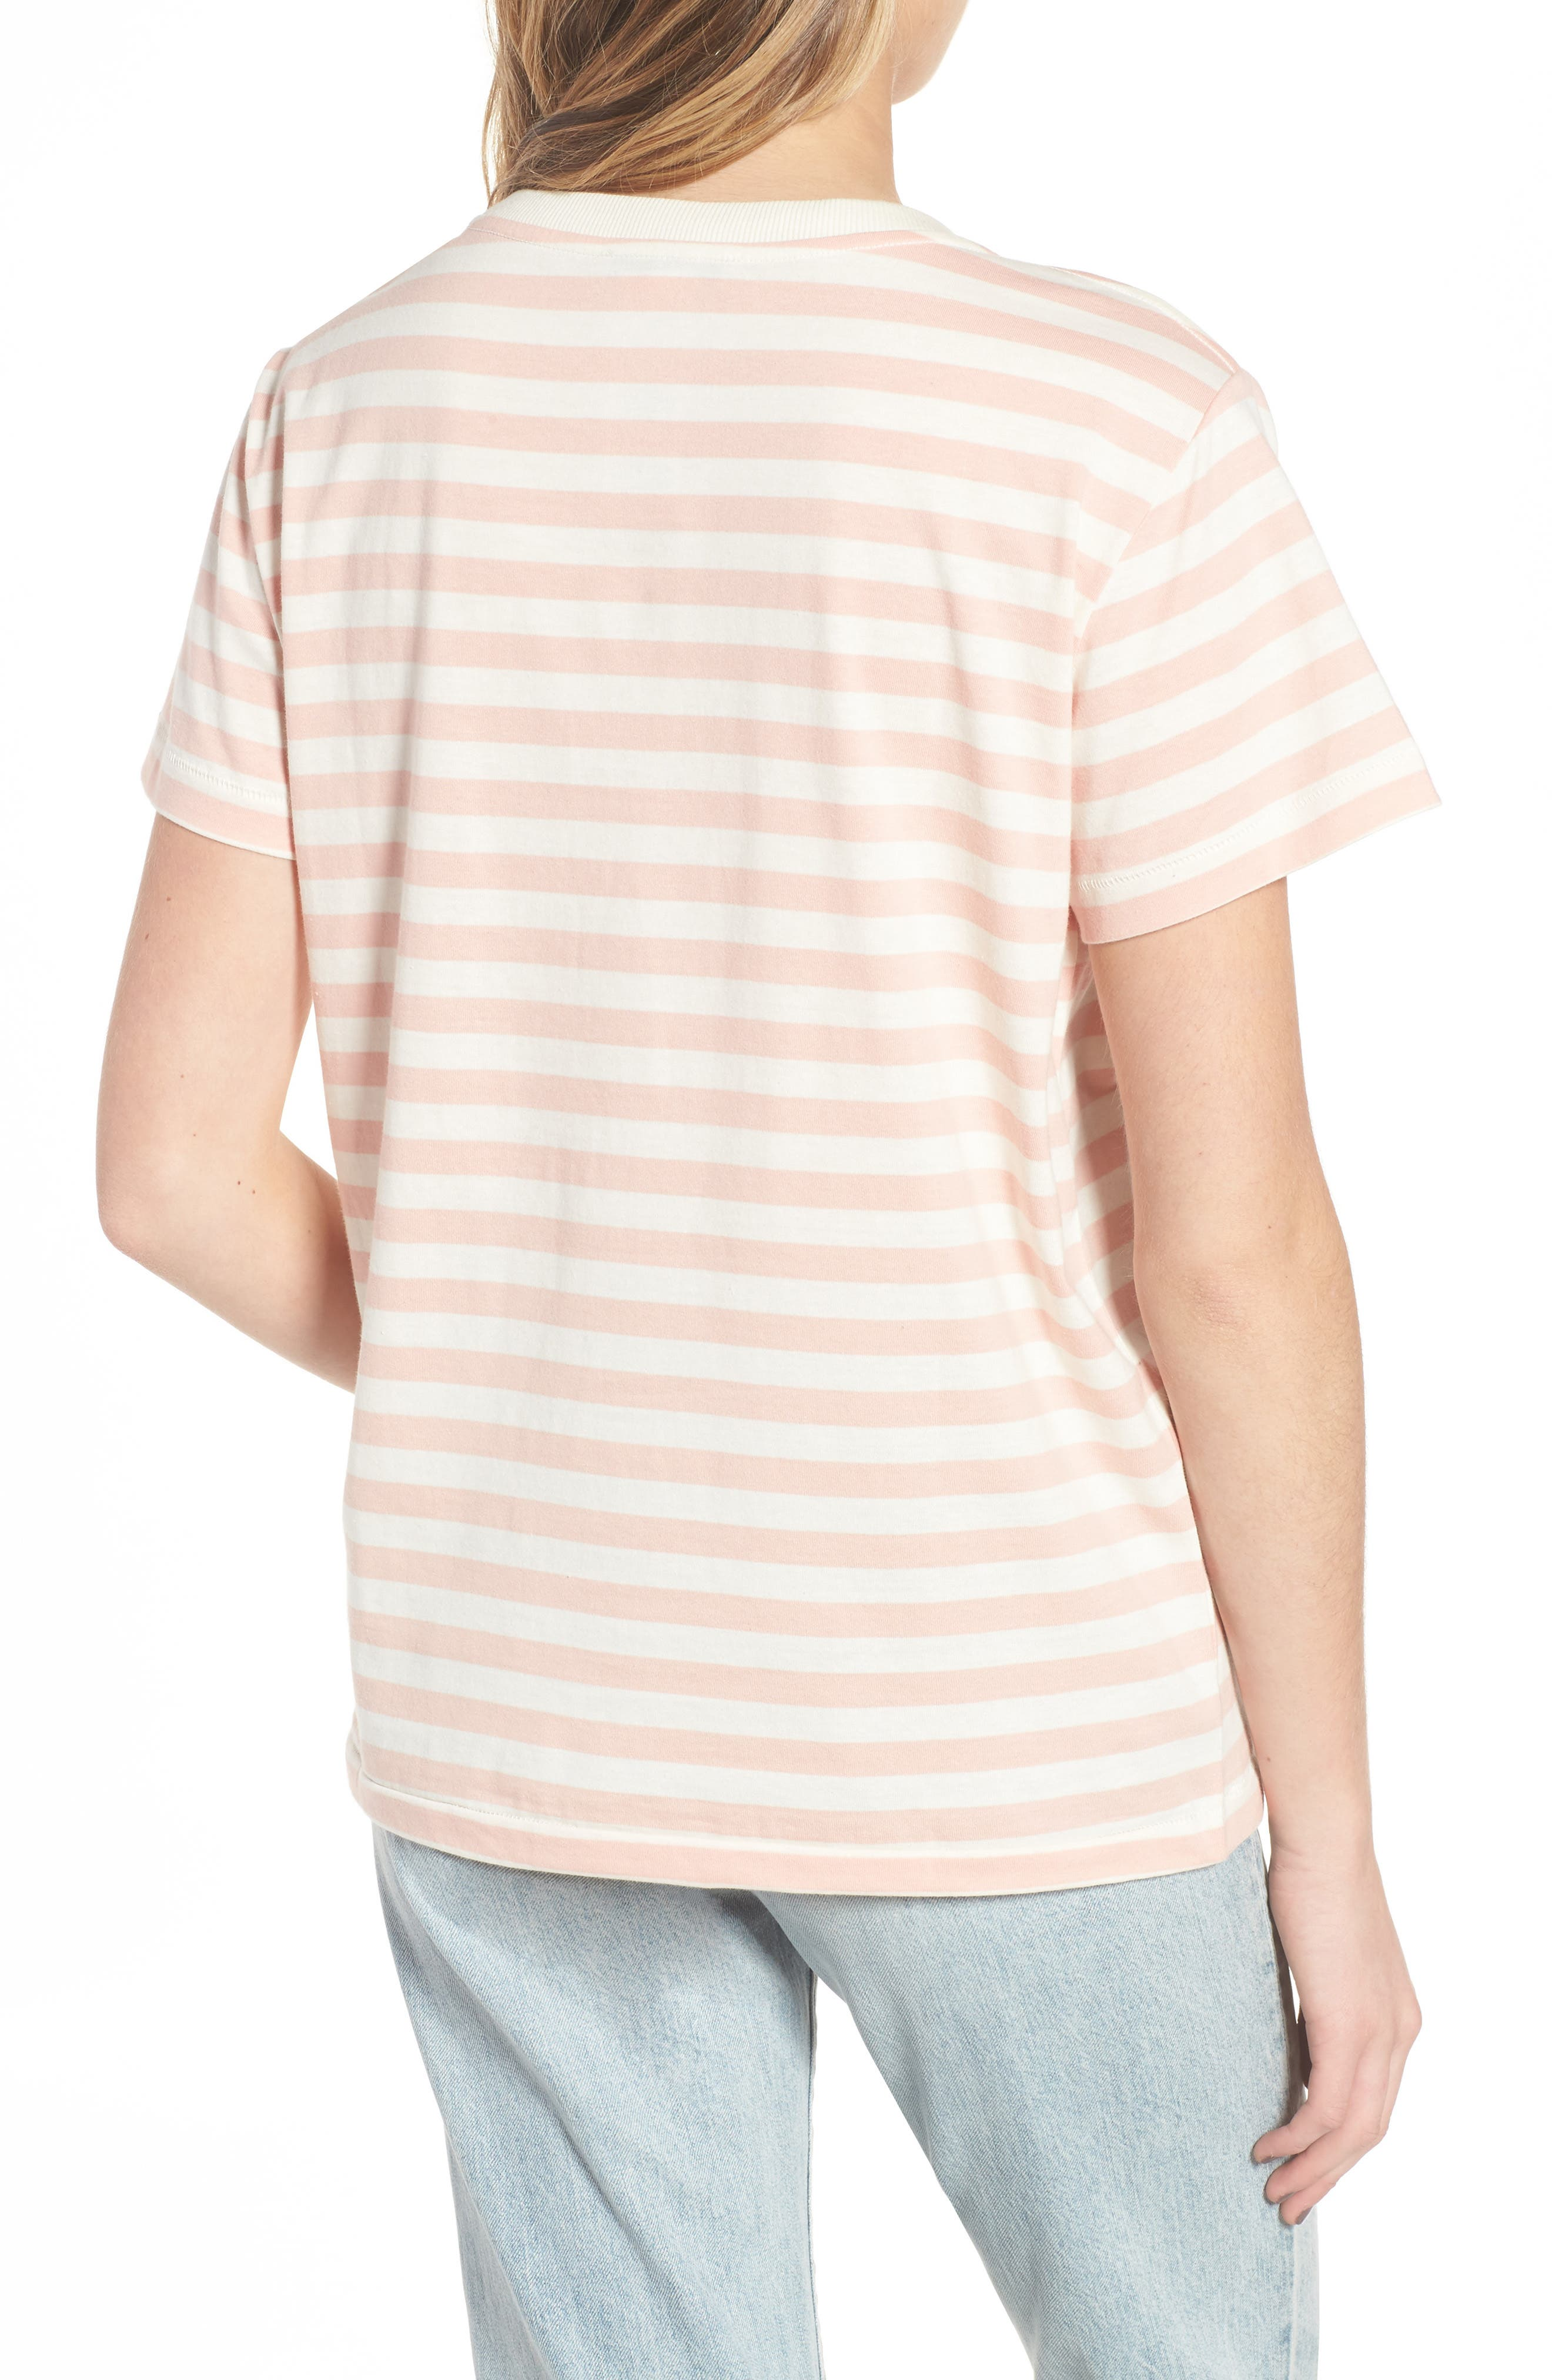 Timtomt Tee,                             Alternate thumbnail 2, color,                             Pink